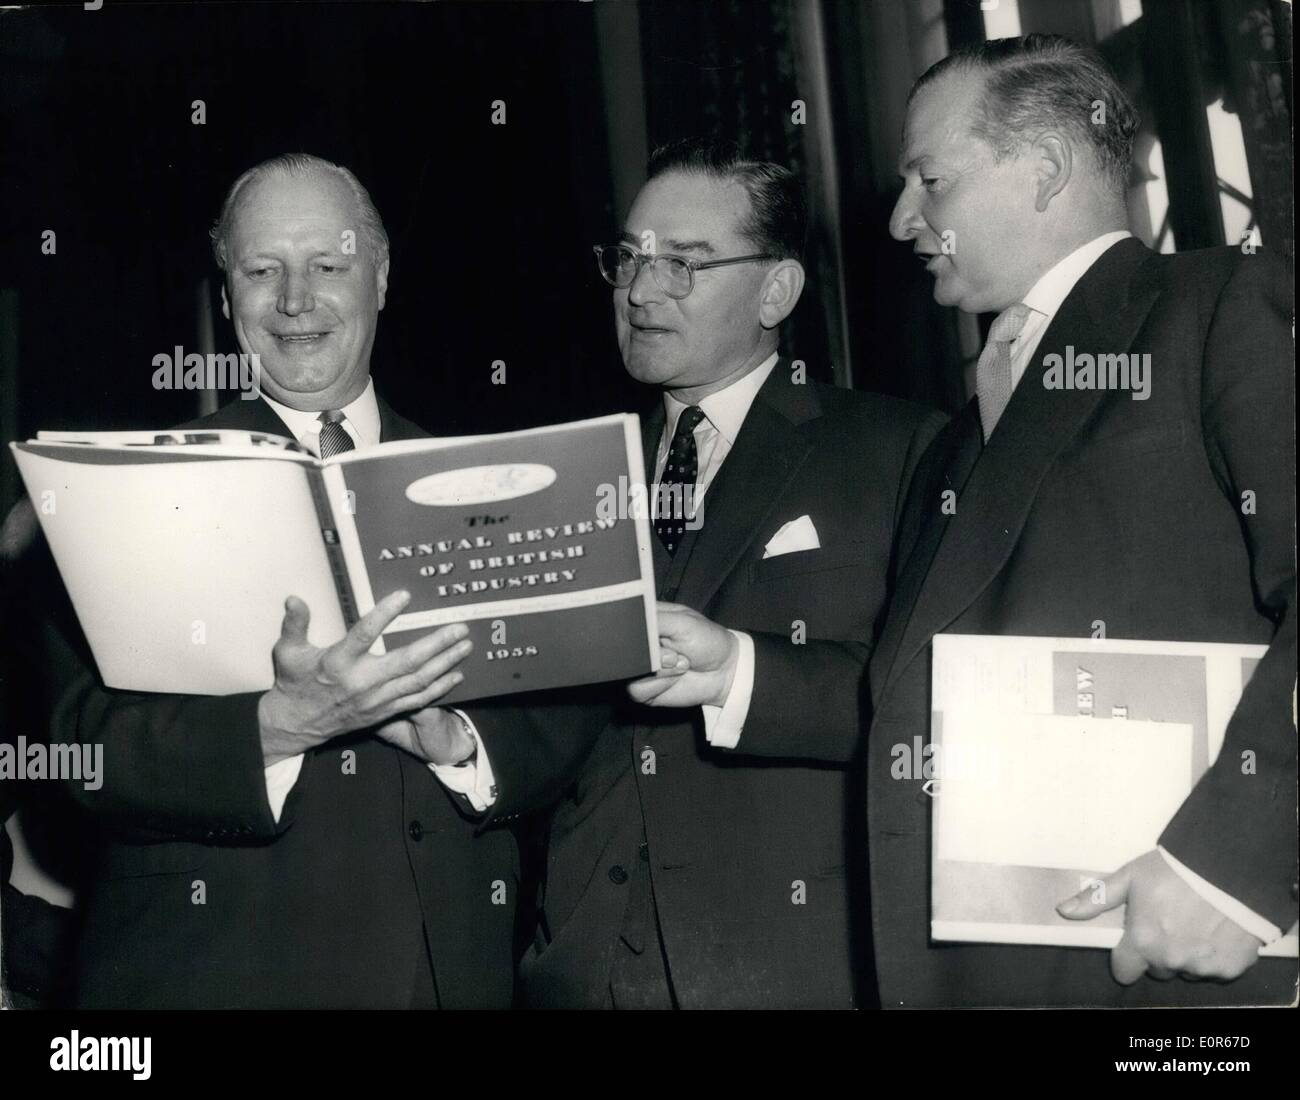 Apr. 04, 1958 - Foreign Secretary hands copies of British Industry Review to American and Canadian officials - at house of Commons. Mr. Selwyn Lloyd the Foreign Secretary this afternoon presented copies of ''The Annual Review to British Industry 1958'' to the American Ambassador Mr. J. H Whitiney for transmission to Pres. Eisenhover - and to Mr. George Dw the Canadian High Commissioner for transmission to Mr.Diefenbaker. the ceremony was held in the members dining room in the house of Commons. The book is designed to boost British exports to the U.S. and Canada. Photo shows Mr - Stock Image